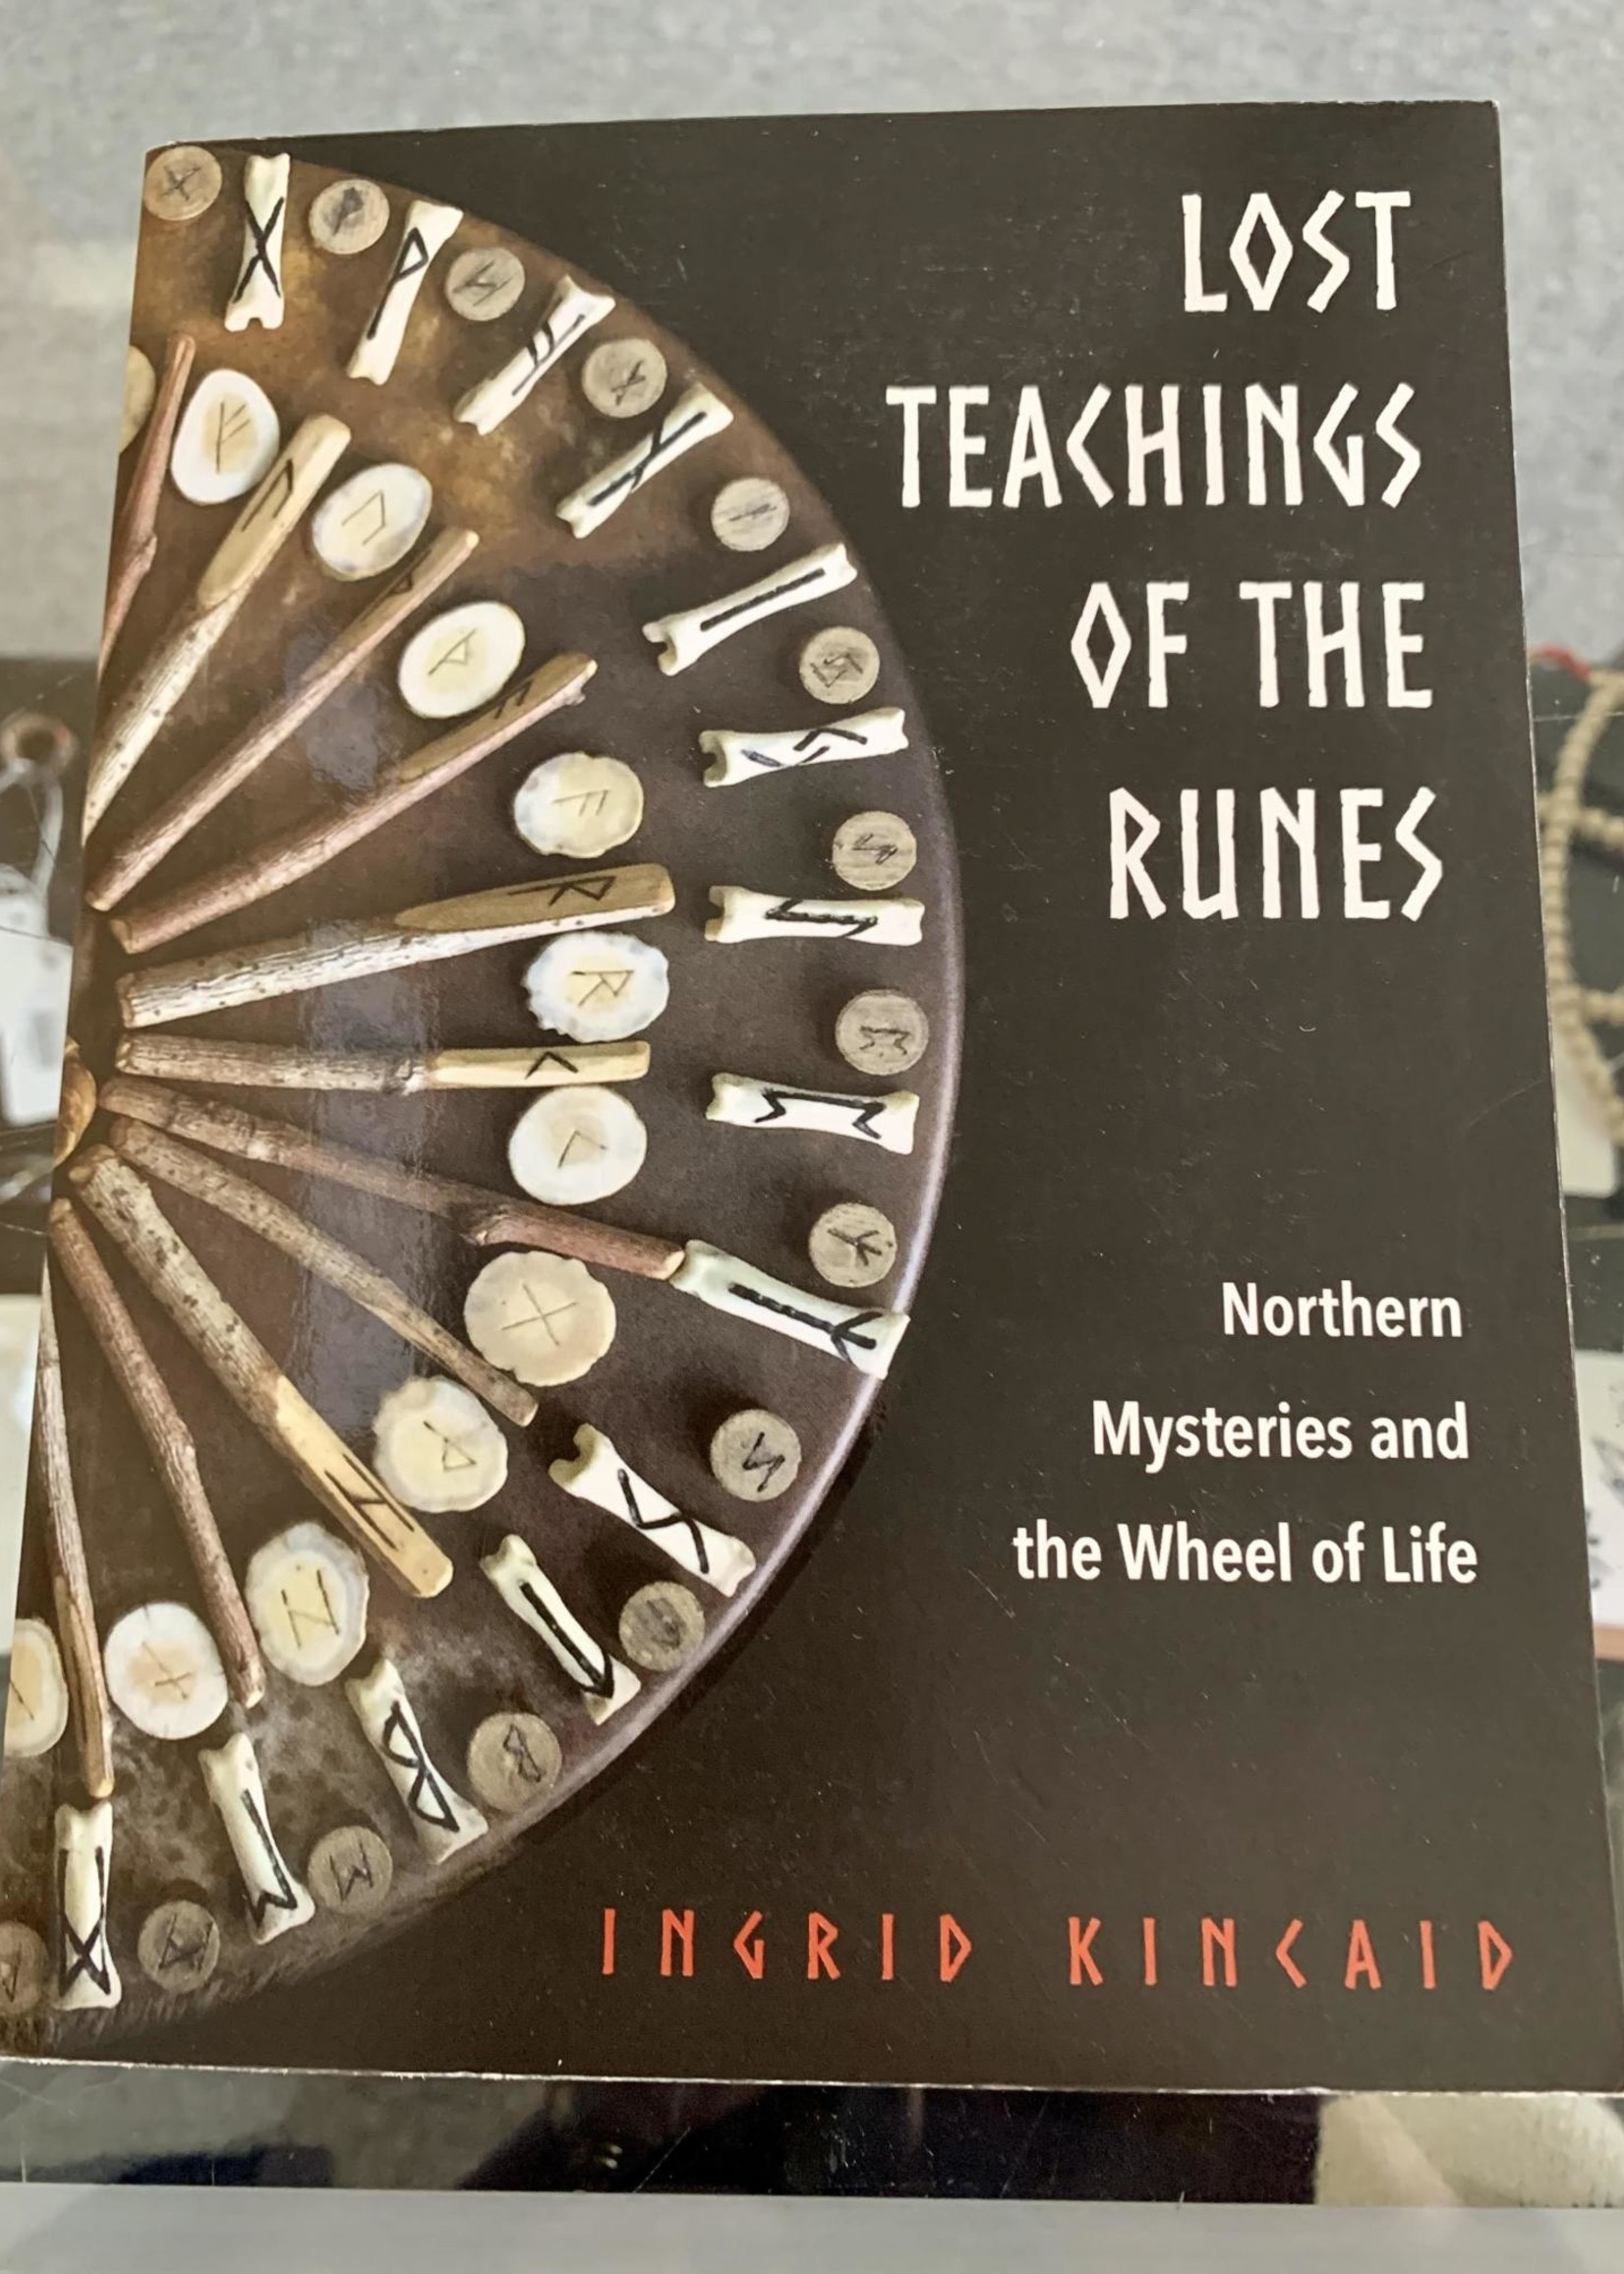 Lost Teachings of the Runes Northern Mysteries and the Wheel of Life - Ingrid Kincaid